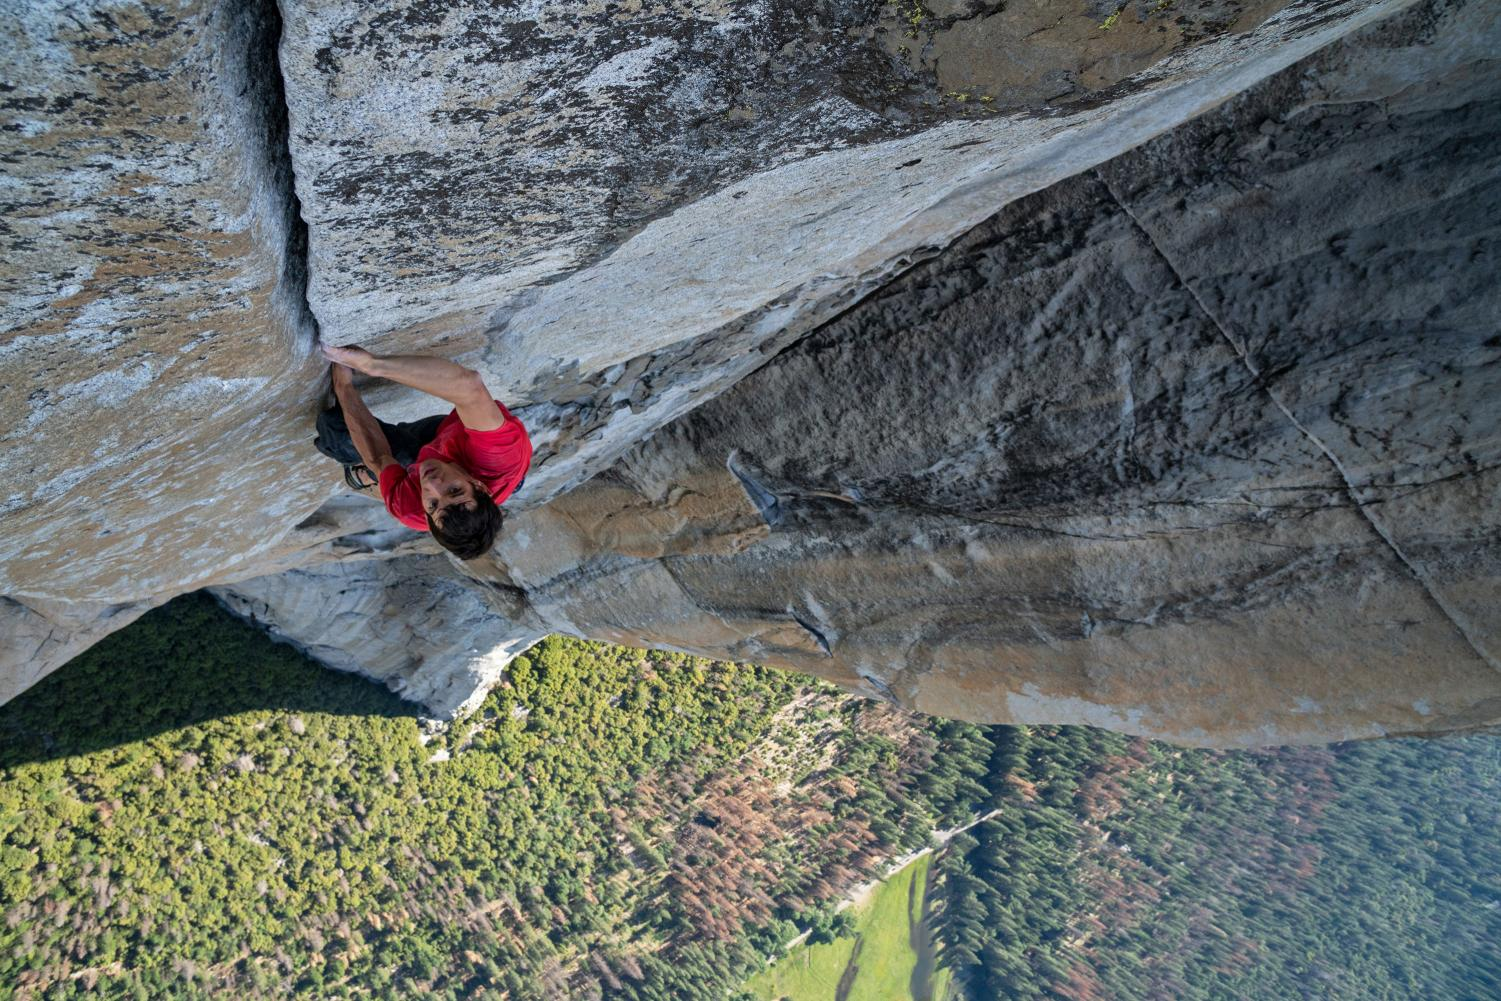 Ascending up El Capitan, Alex Honnold uses no ropes for support. Free Solo captures his preparation for this climb as well as the climb itself.